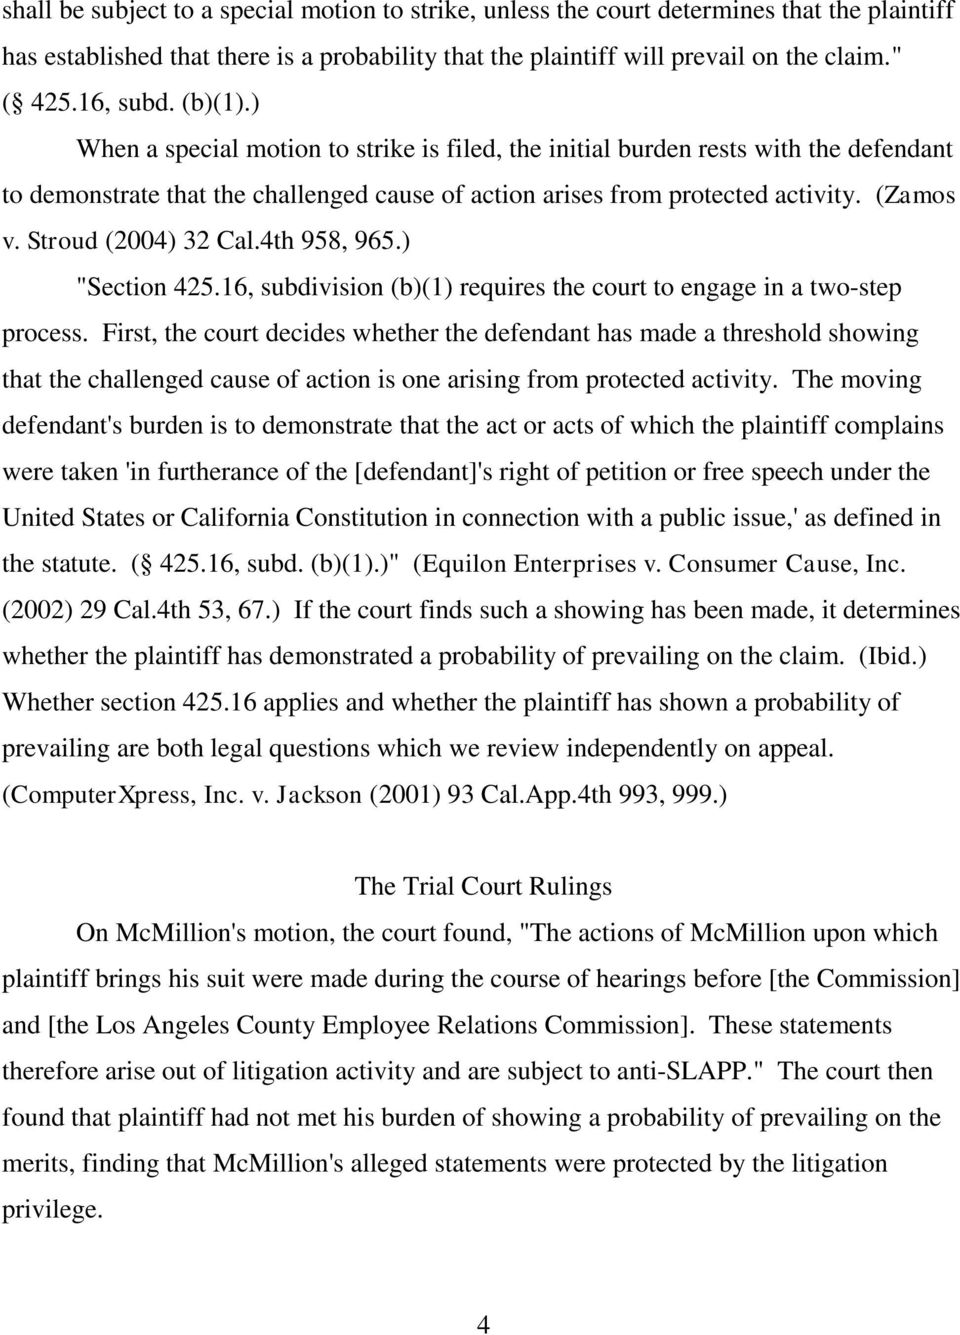 "Stroud (2004) 32 Cal.4th 958, 965.) ""Section 425.16, subdivision (b)(1) requires the court to engage in a two-step process."